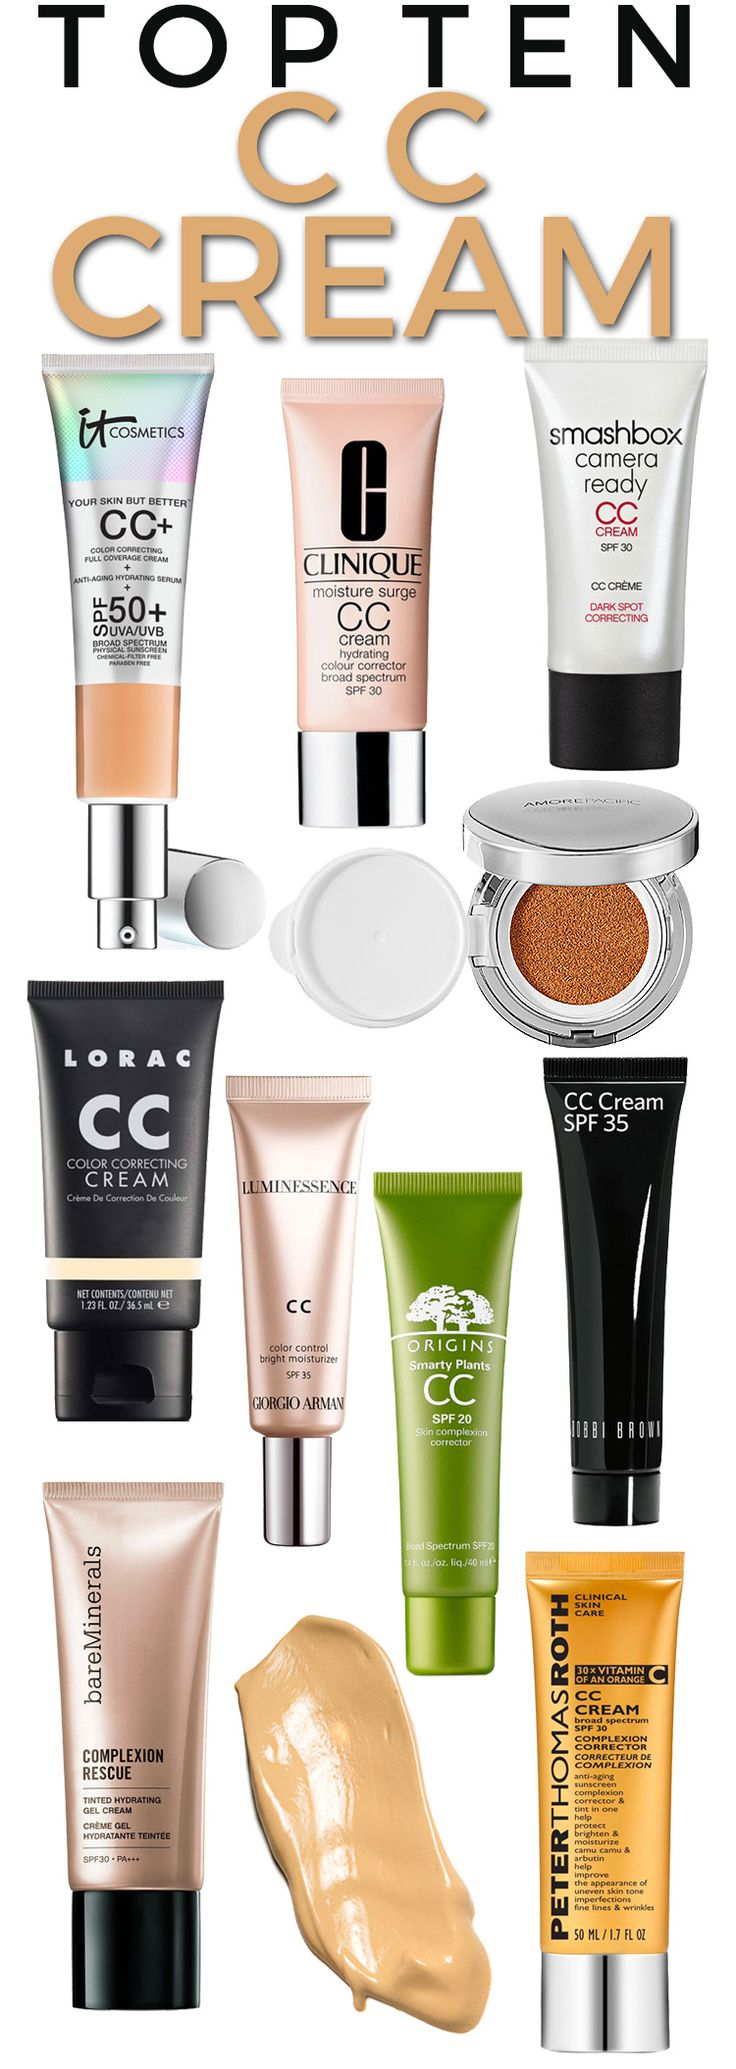 Top 10 CC Creams